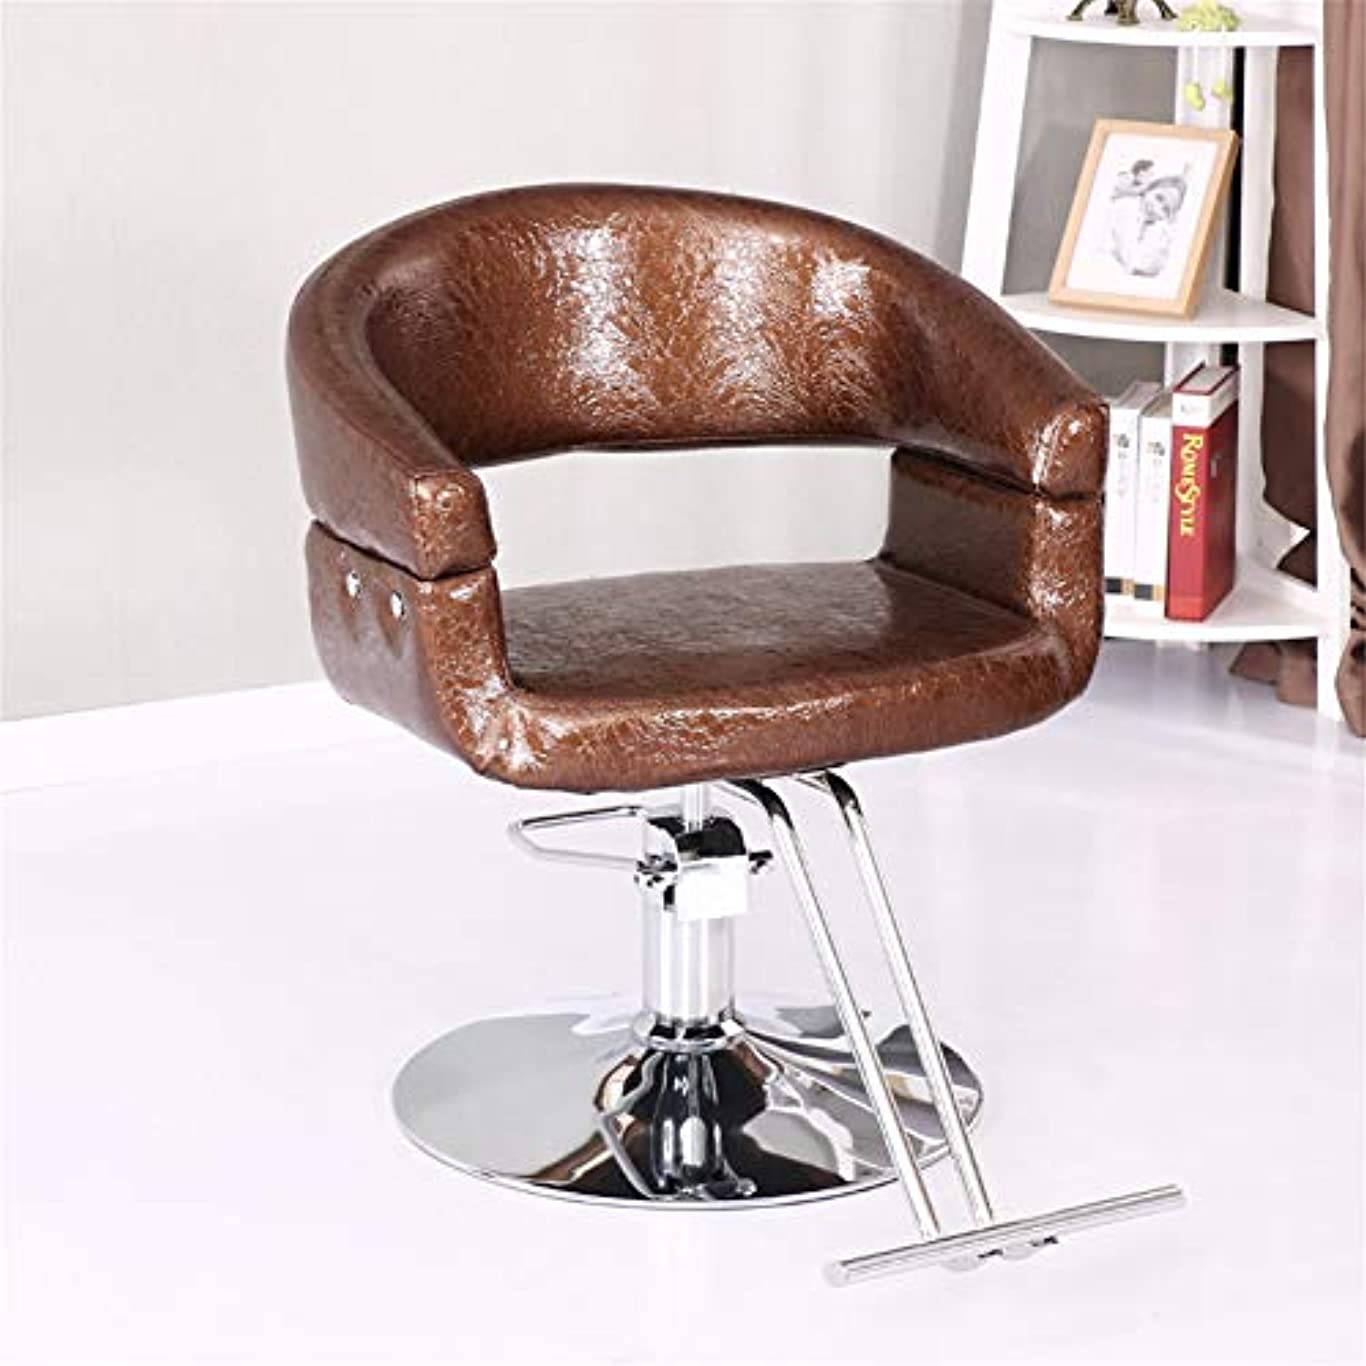 権限を与えるアナウンサー修正するSalon Chair Fashion Hydraulic Barber Chair Styling Beauty Salon Equipment Round Base Stable Comfort,Brown,B